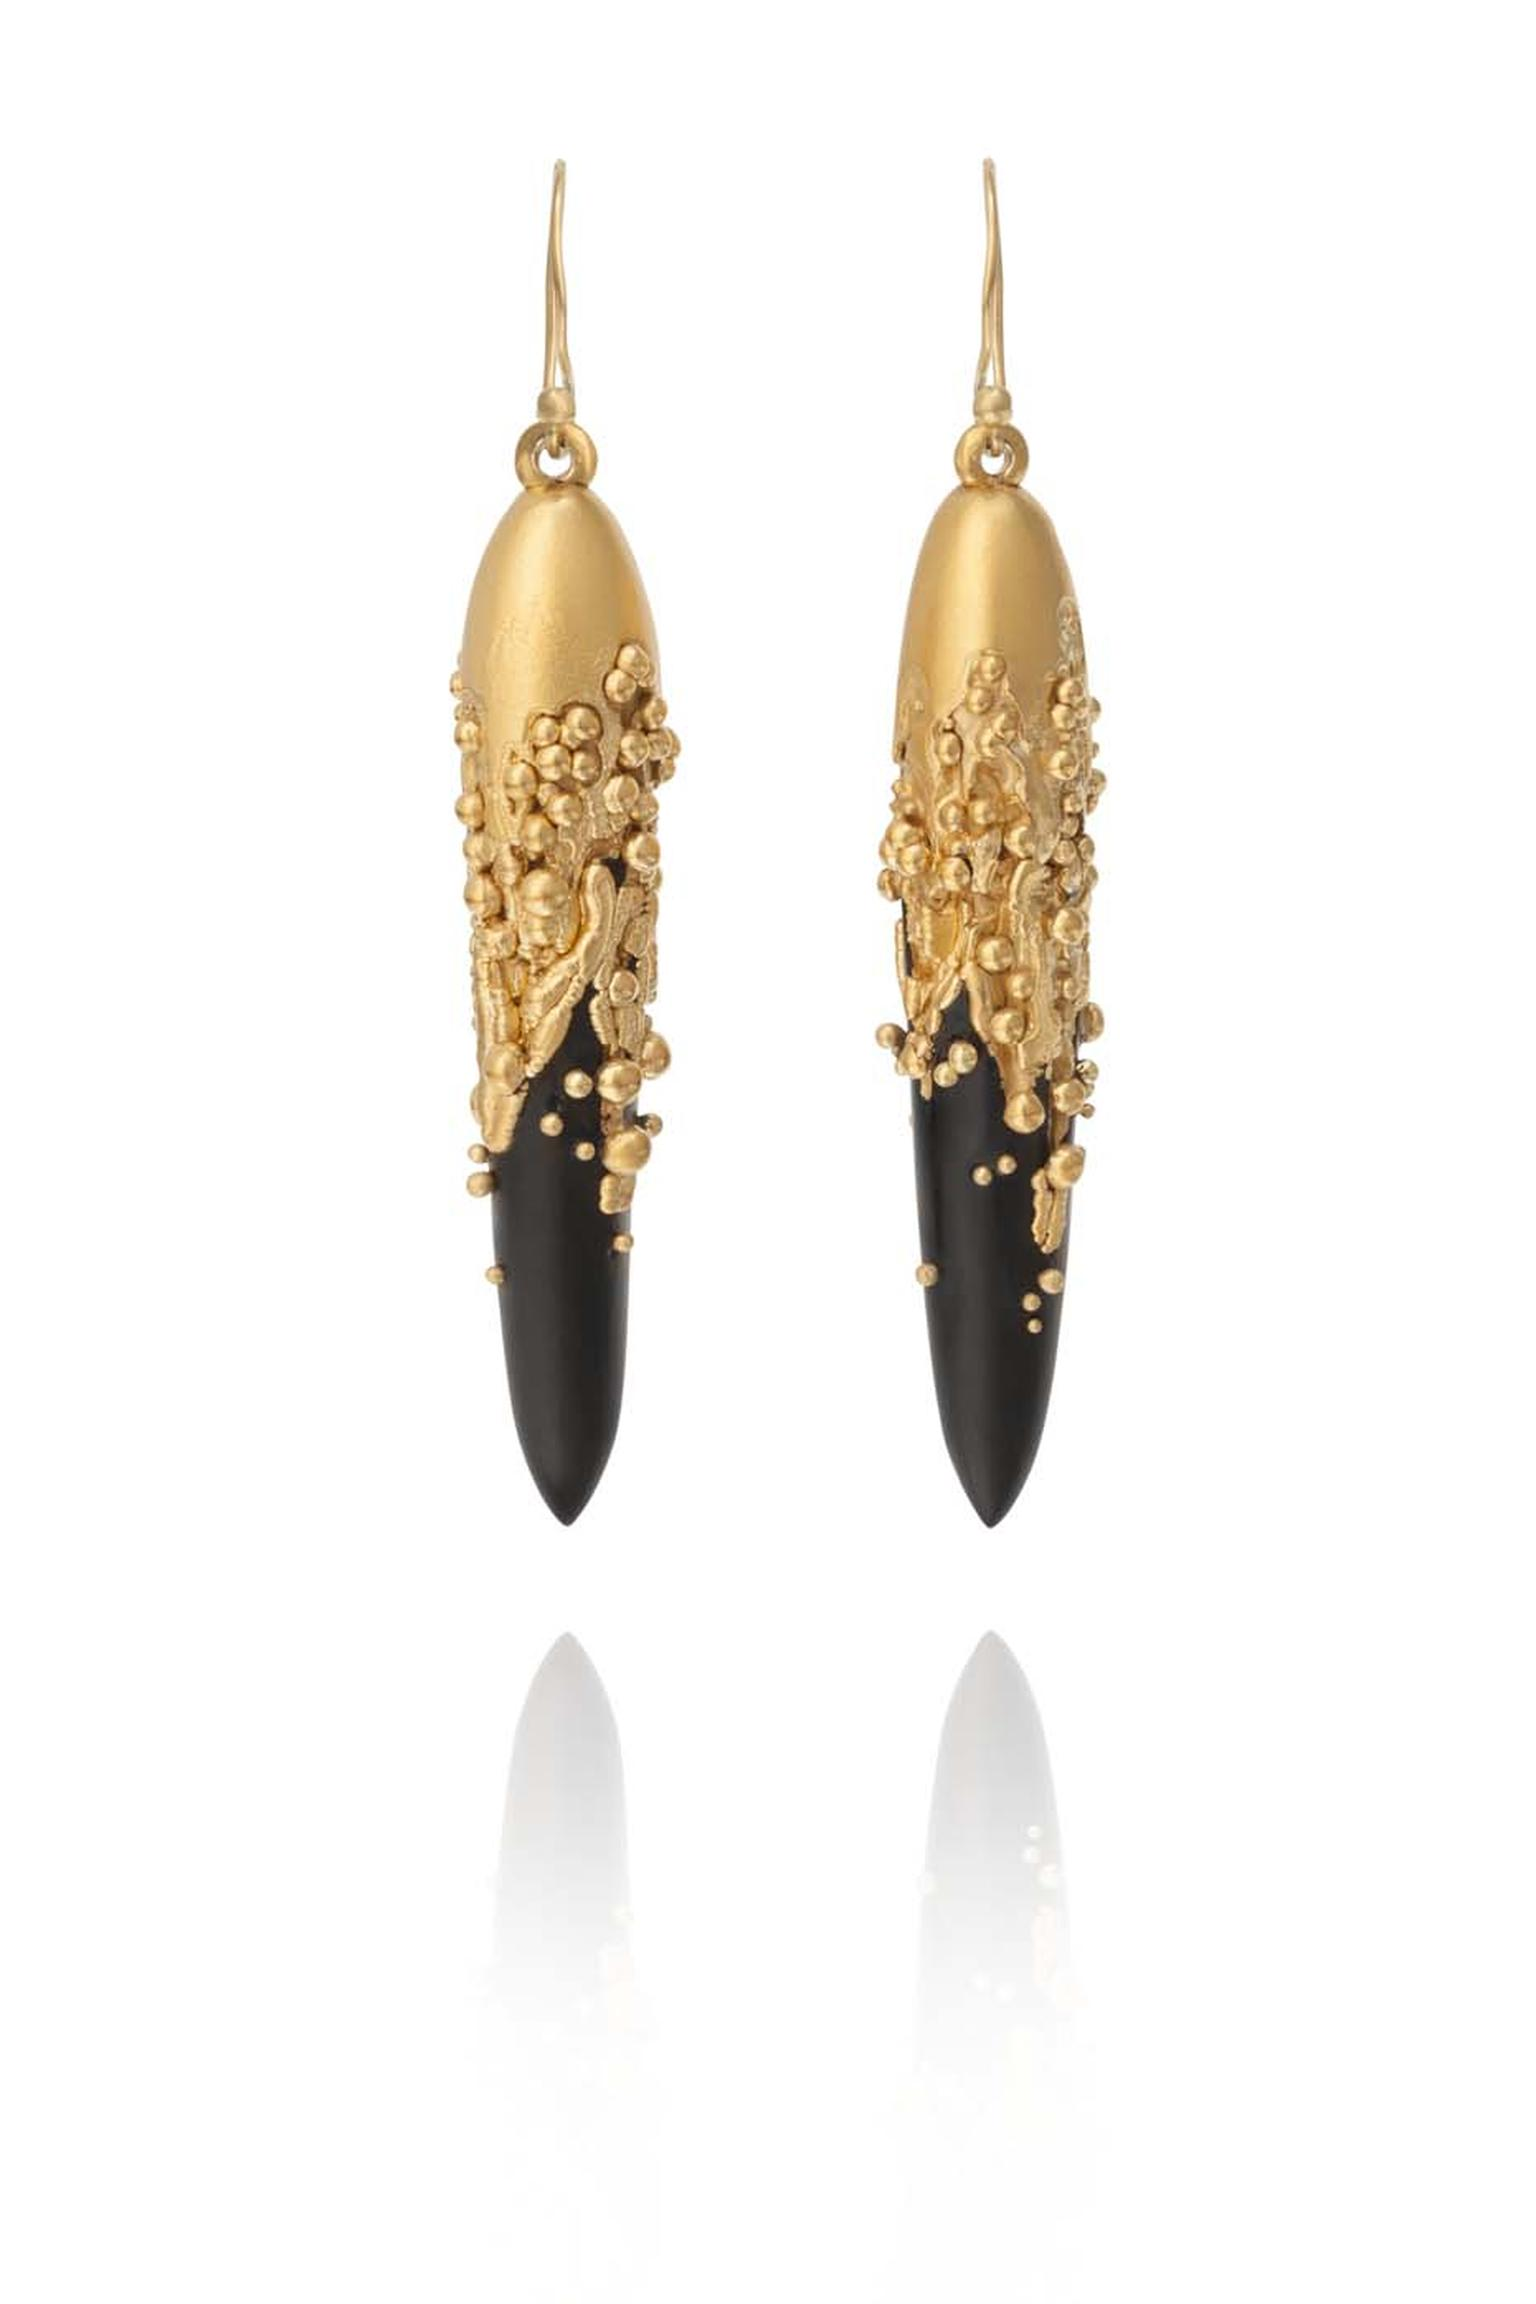 Jacqueline Cullen Whitby jet electro formed earrings in fine silver, gold-plated silver and gold (£650 - £1,250)